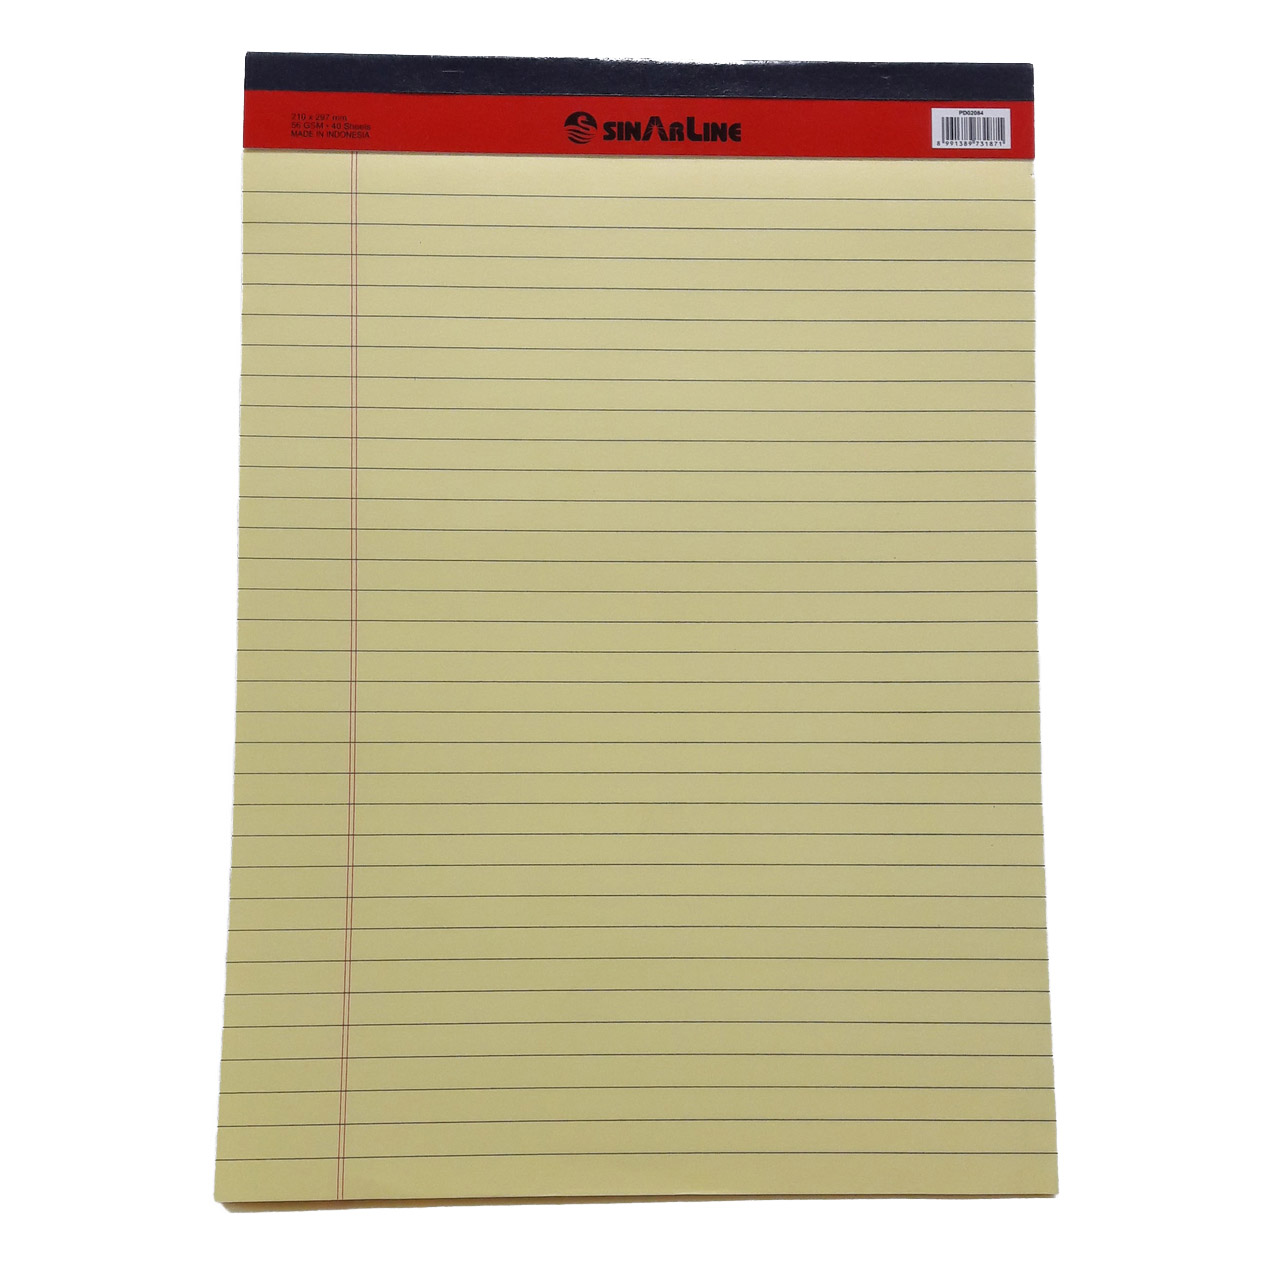 Sinarline Writing Pad 50-sheets A4 - Yellow (pc)